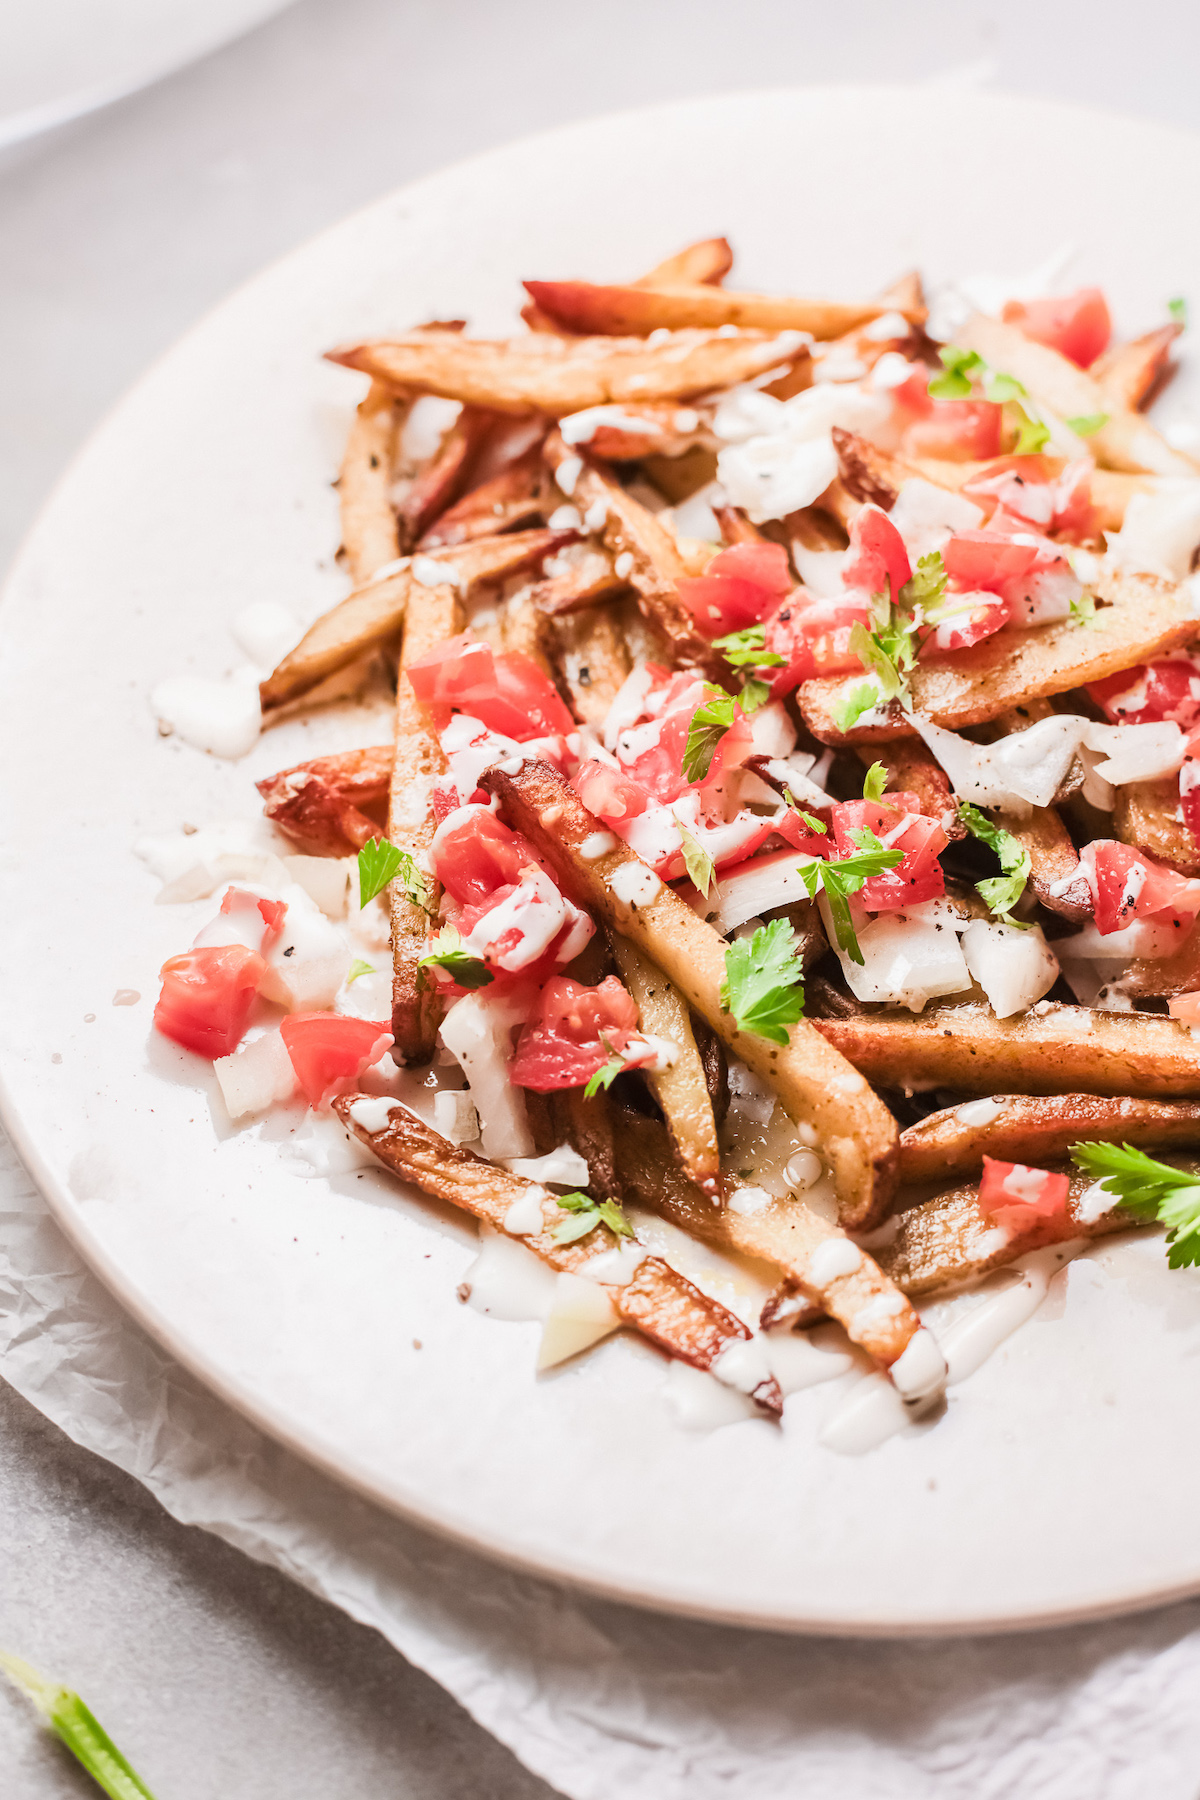 a serving of loaded french fries on a white plate